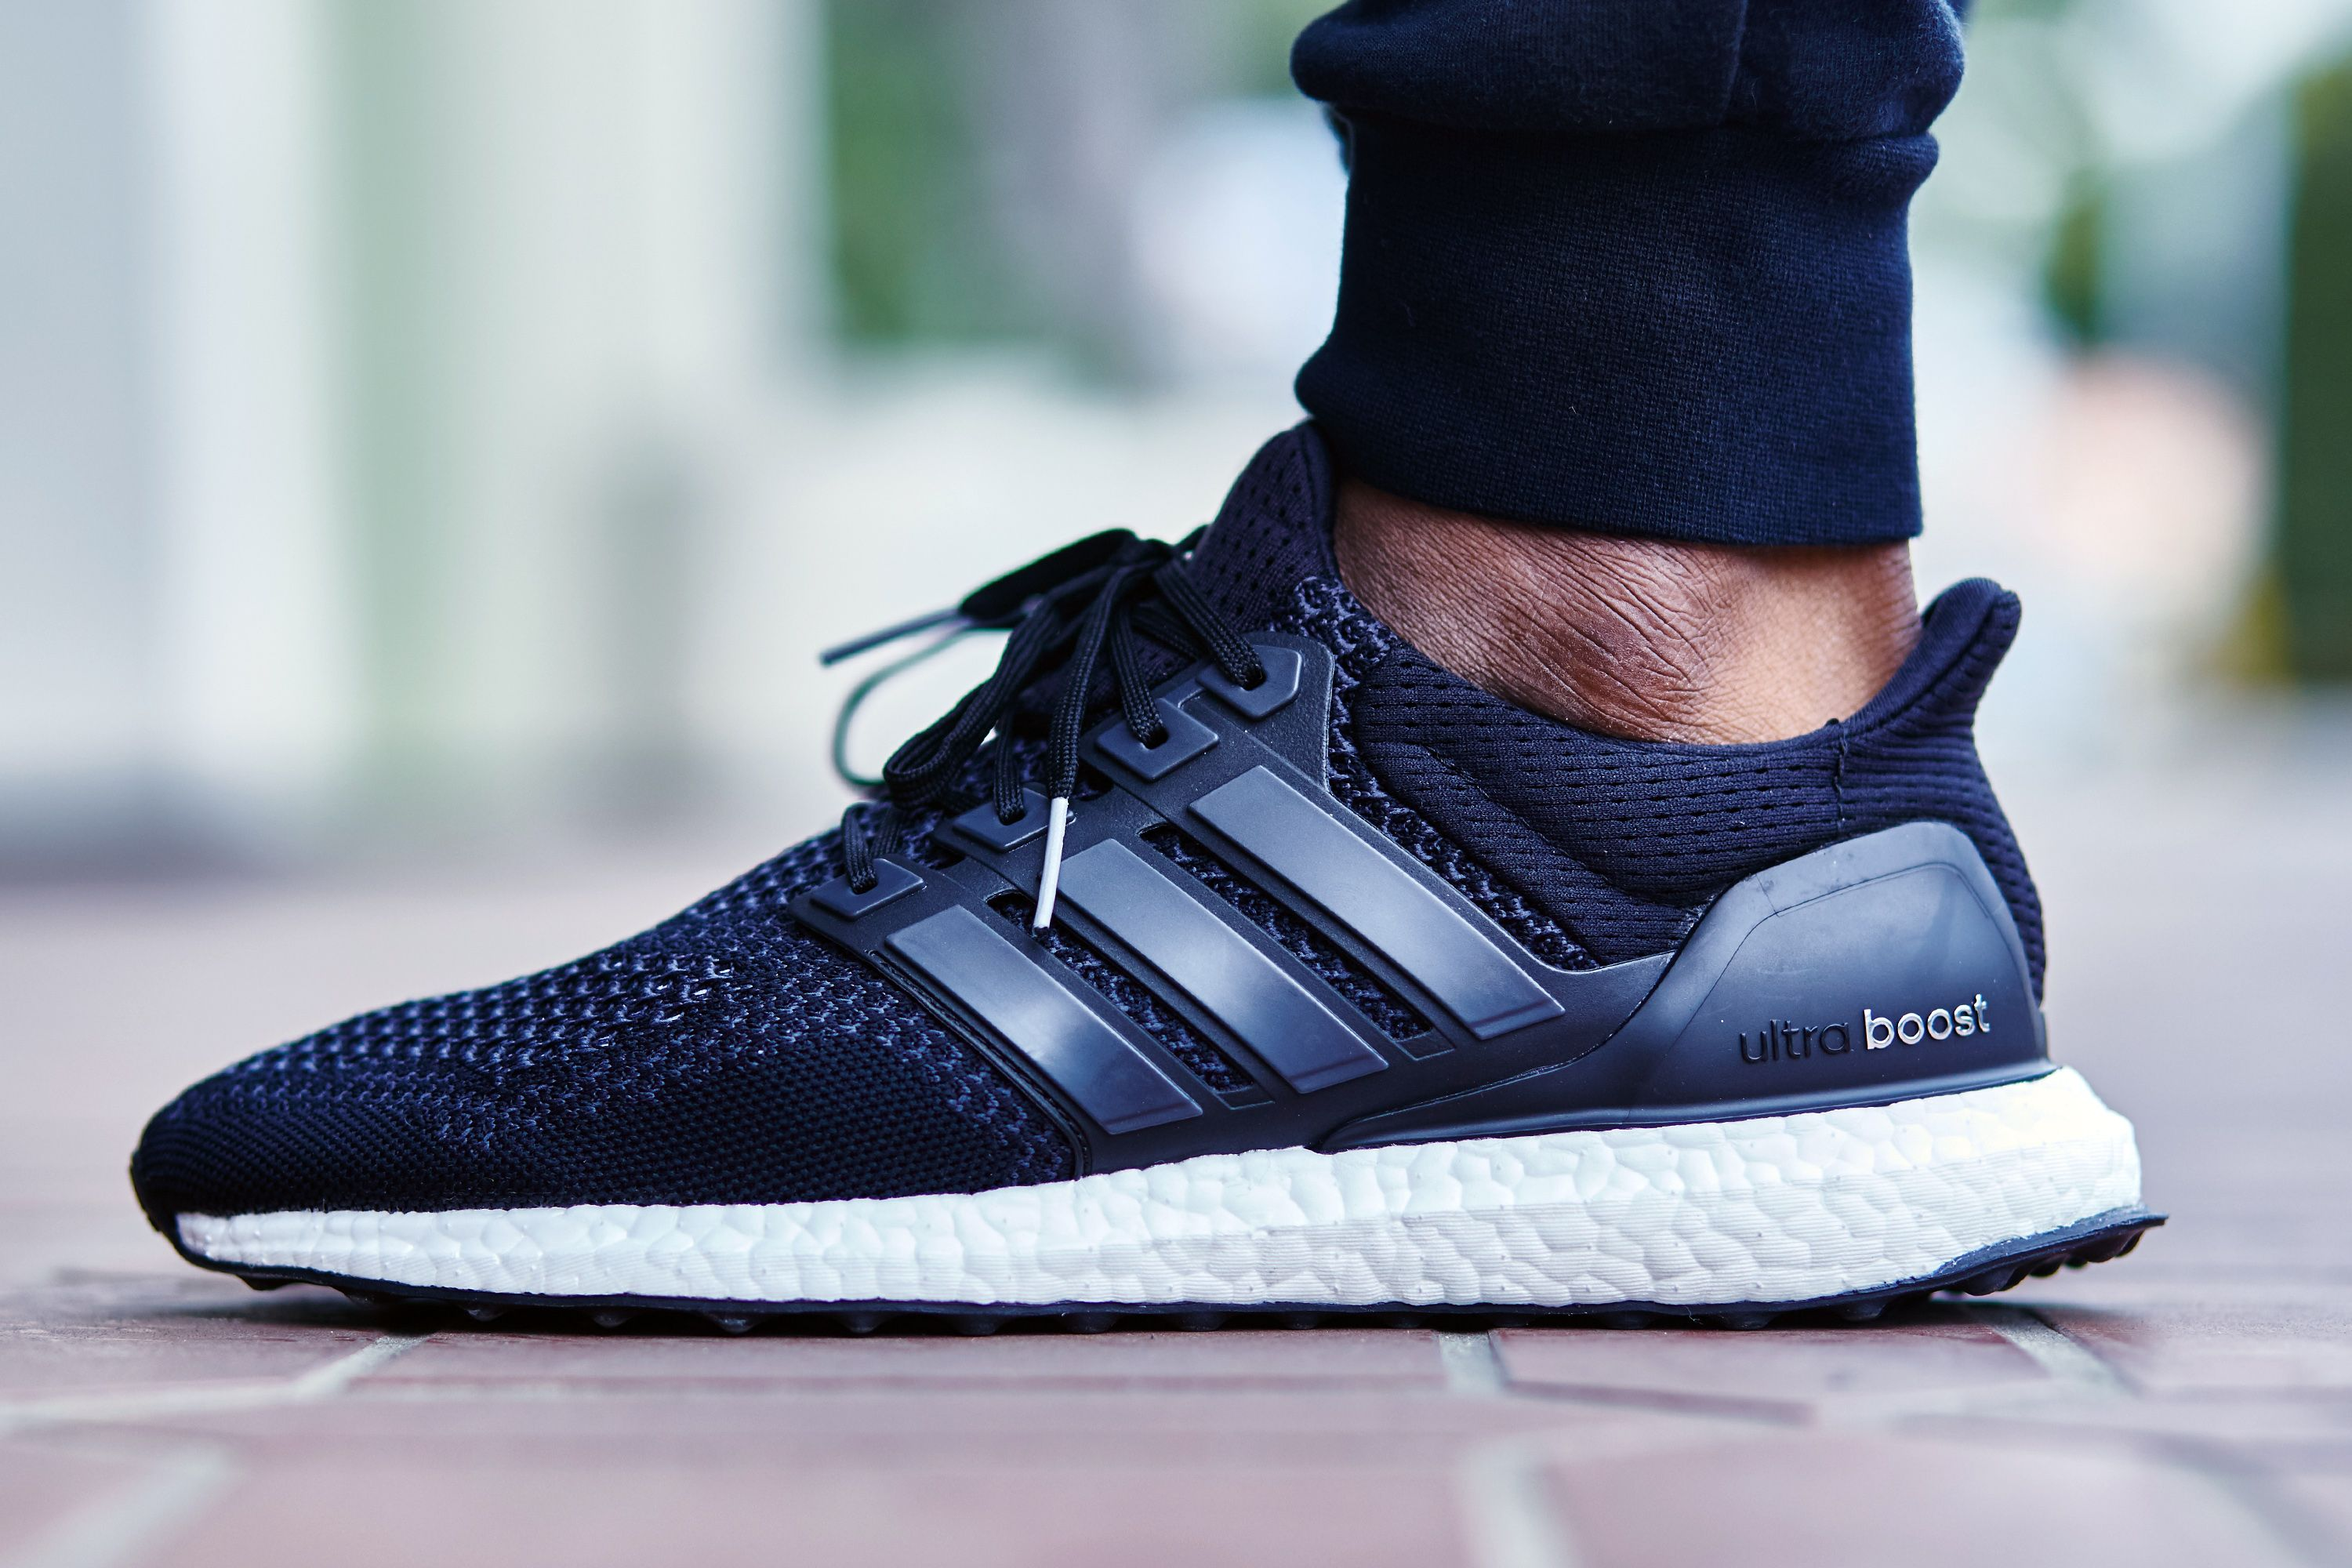 Adidas Ultra Boost Football Soldes Adidas Ultra Boost